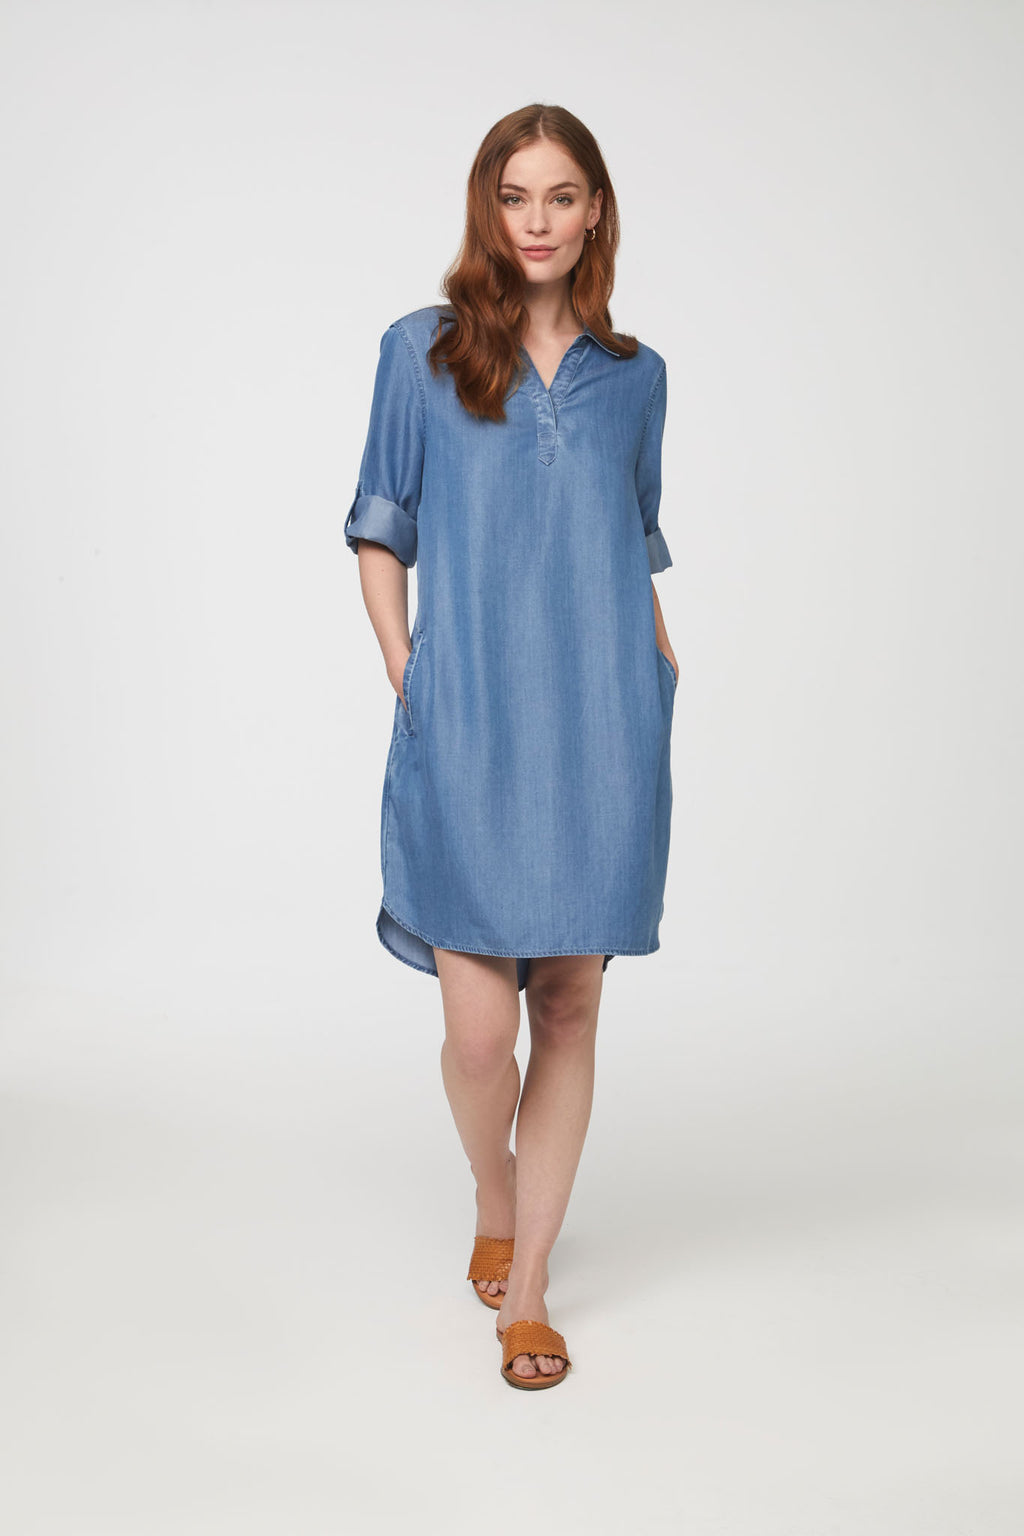 EMELIA DRESS - MEDIUM BLUE